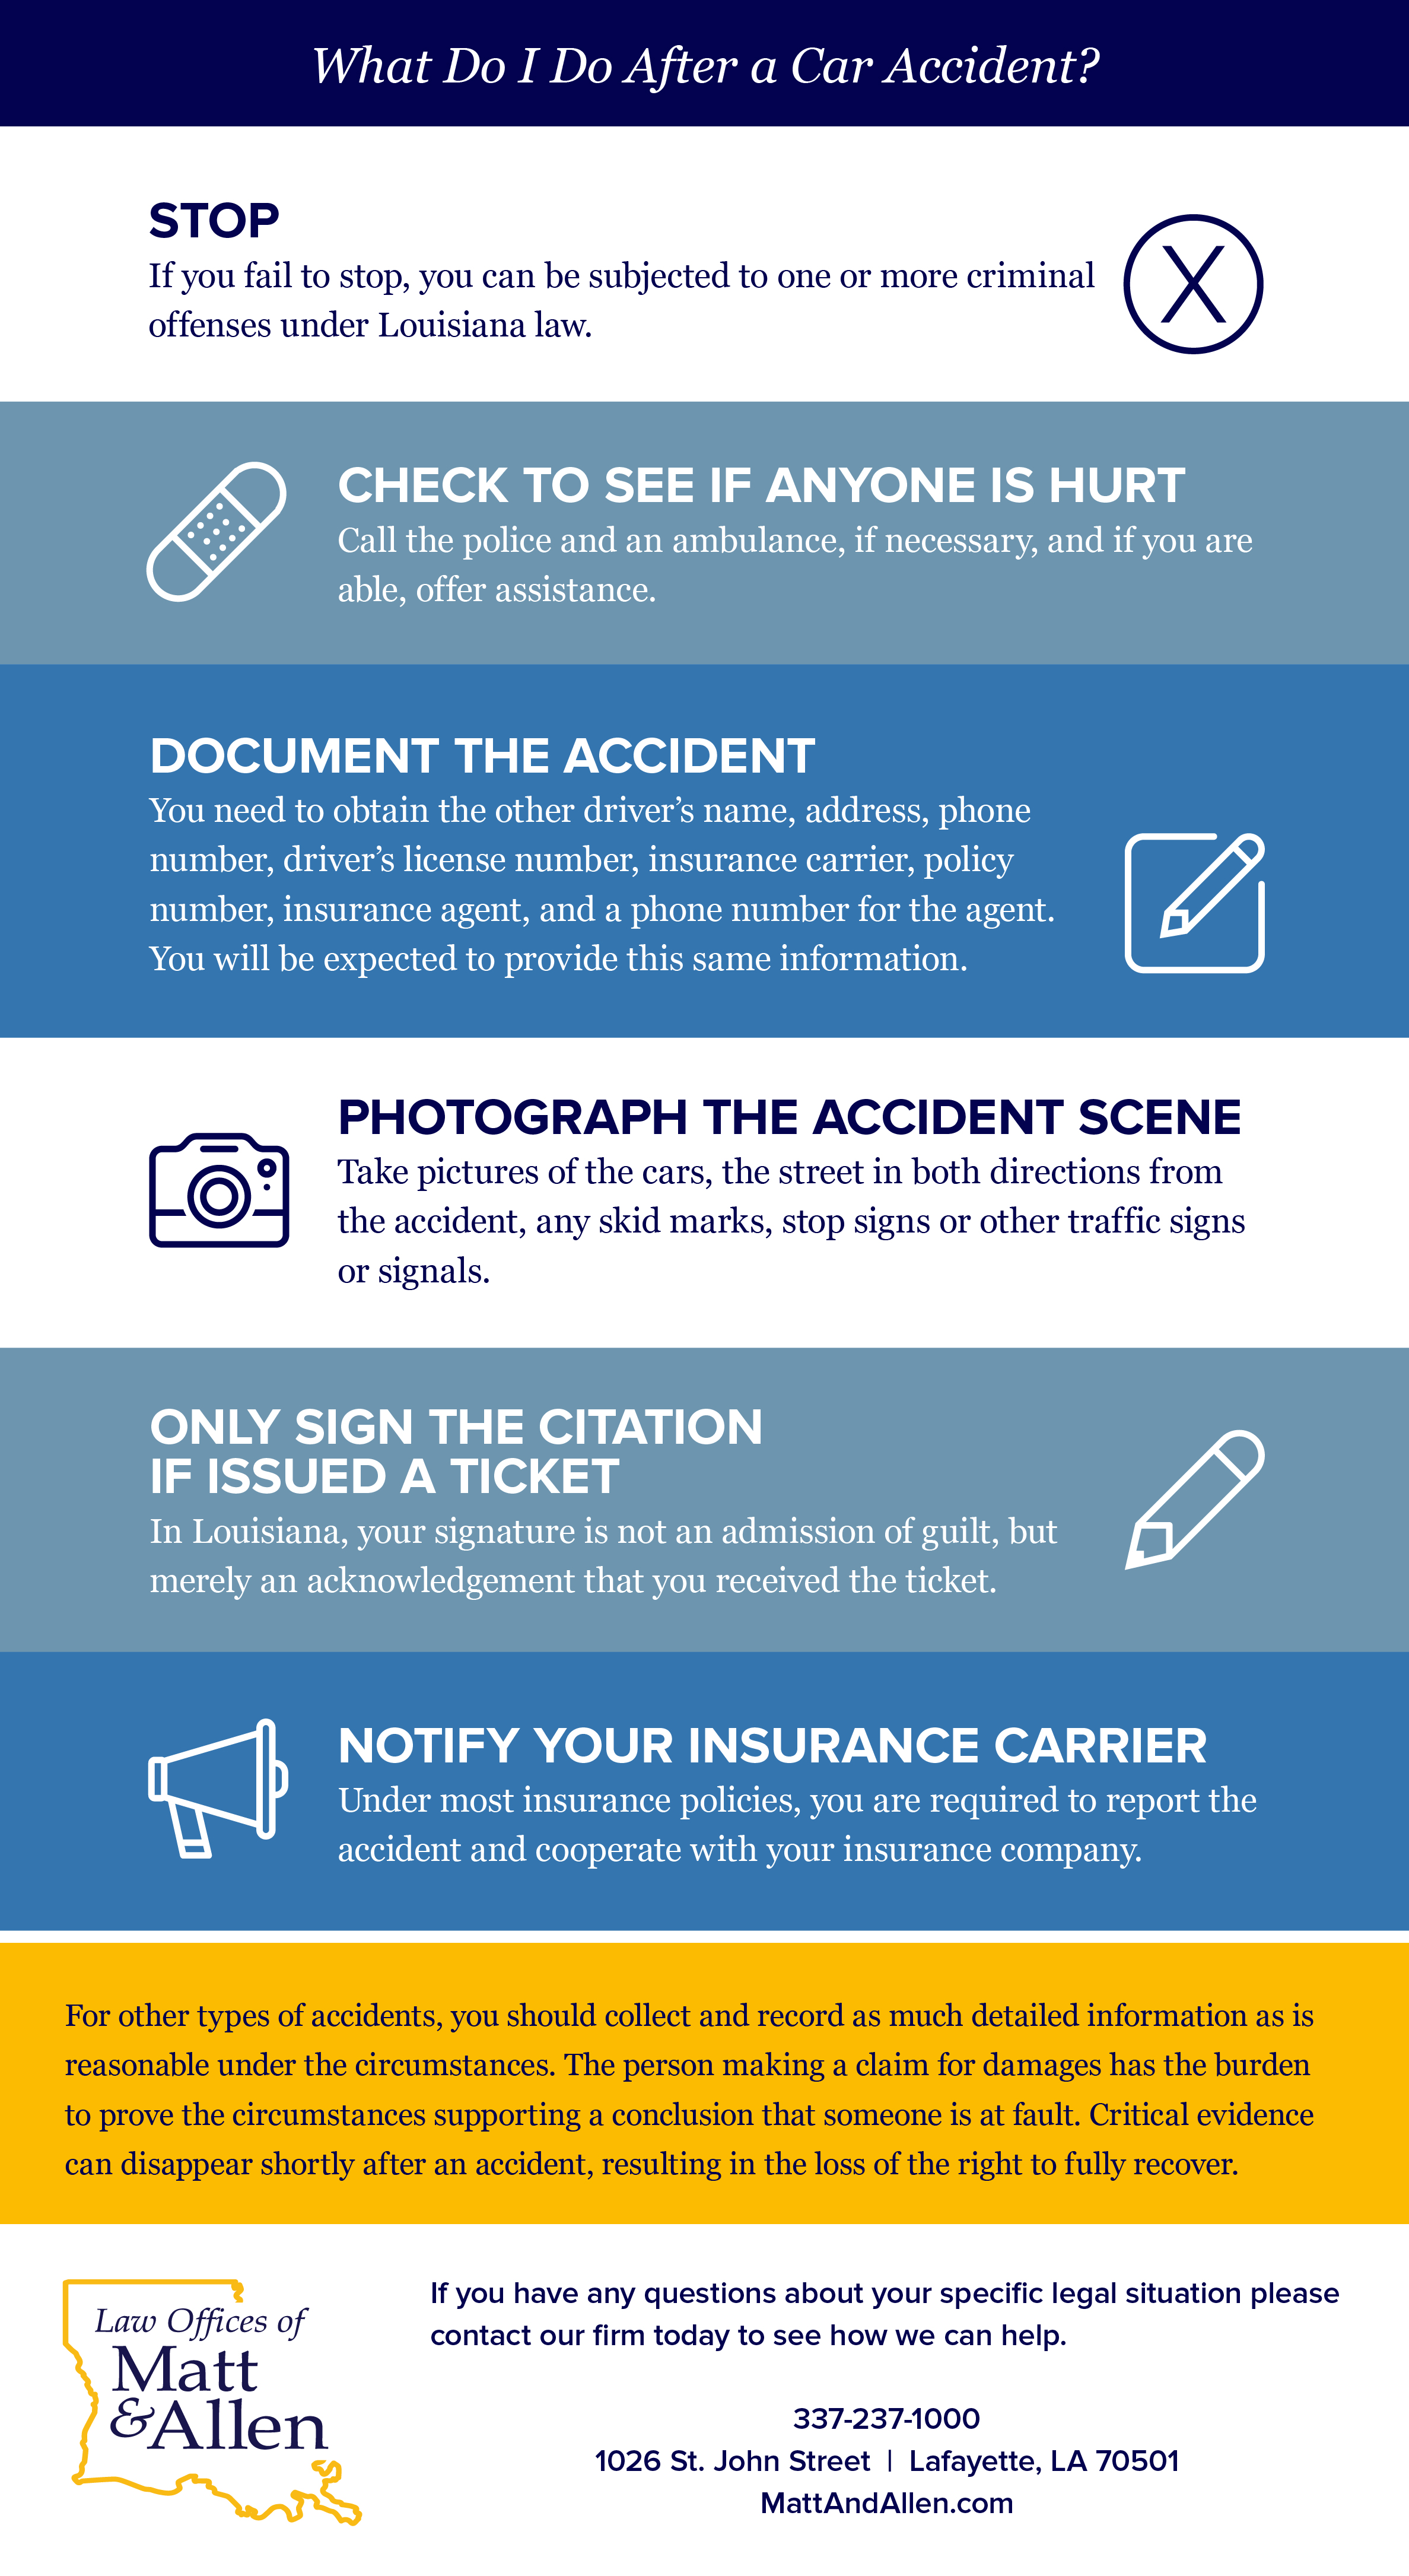 Lafayette-Car-Accident-Steps-Infographic